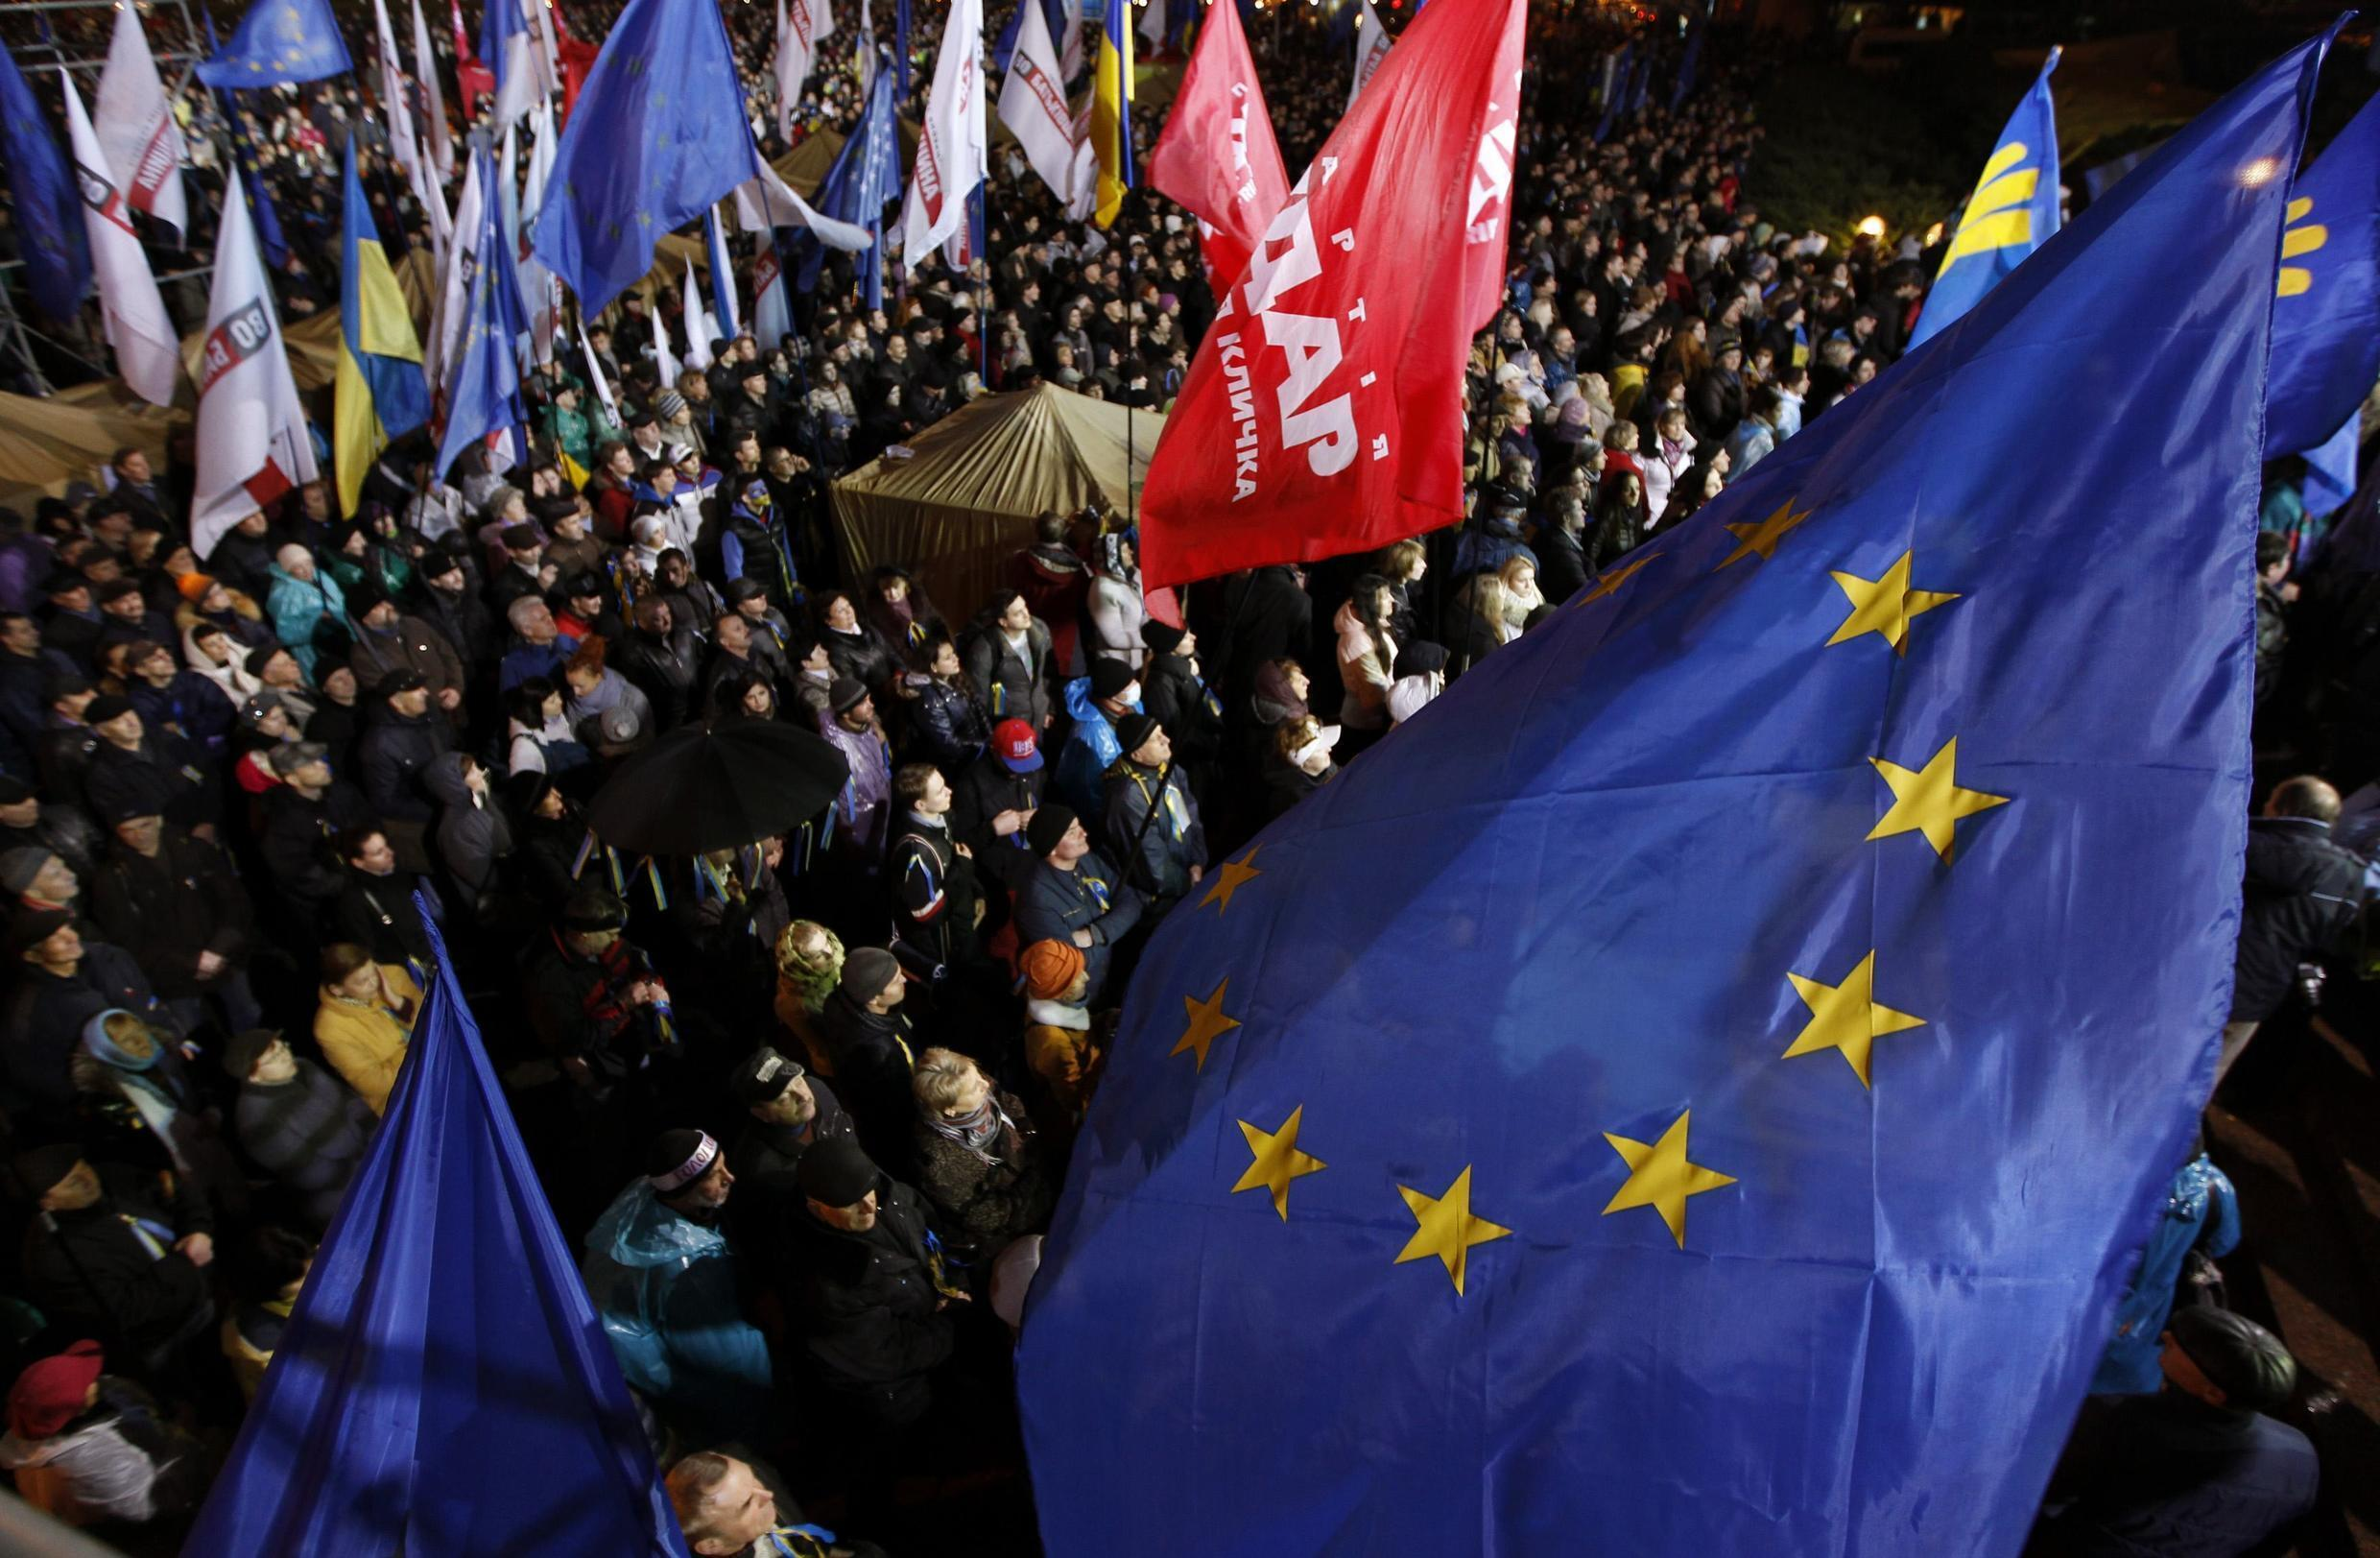 People attend a meeting to support EU integration at European square in Kiev, 25 November 2013